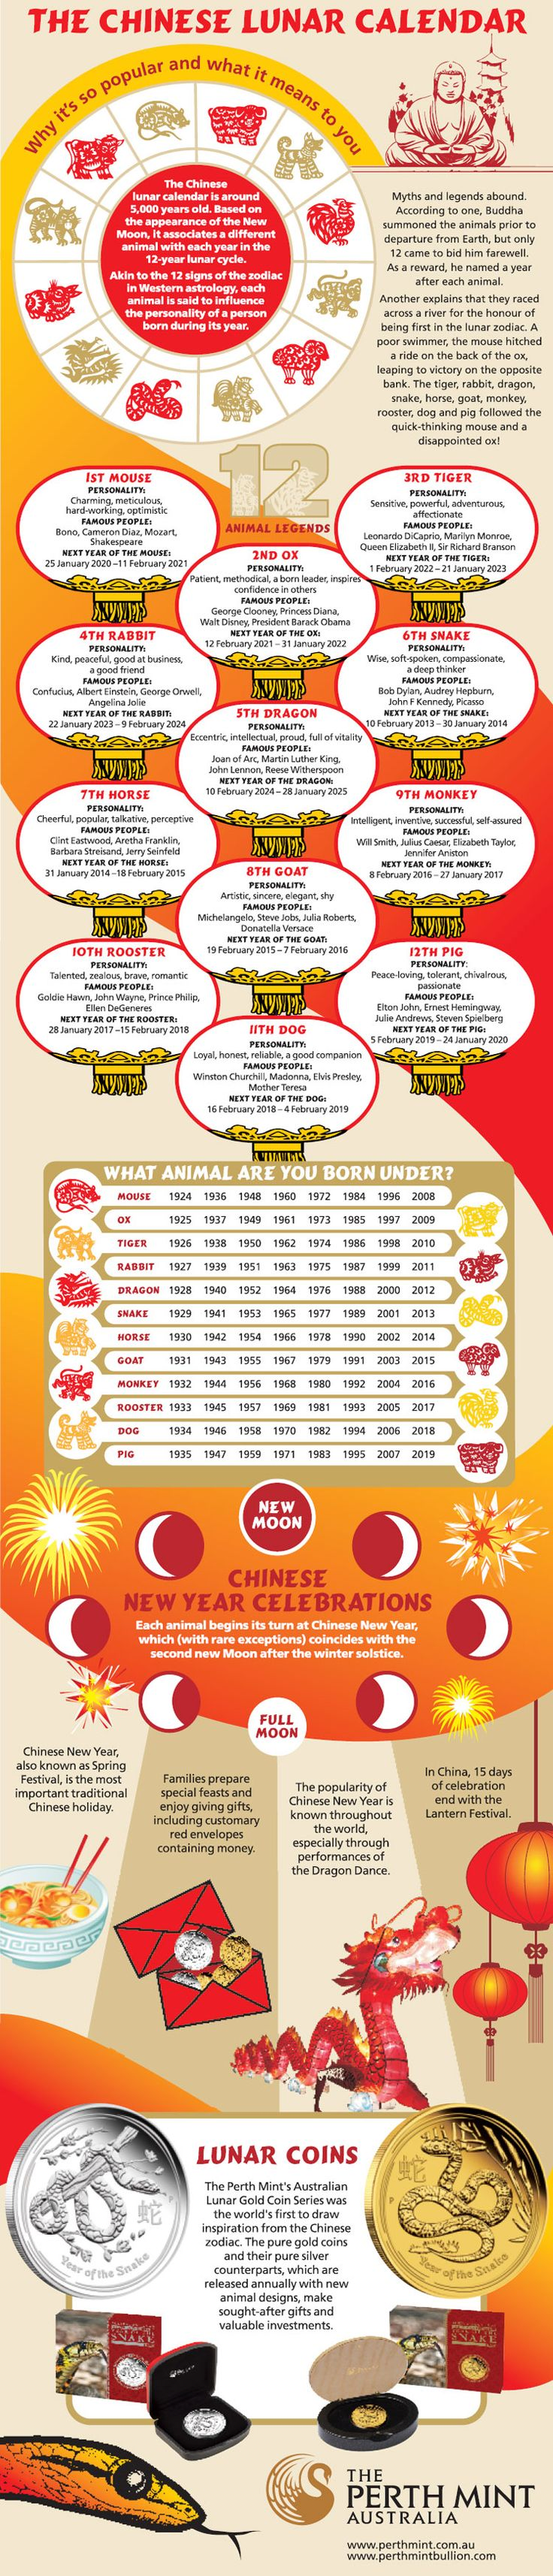 The Chinese Lunar Calendar #infographic #ChineseCalendar